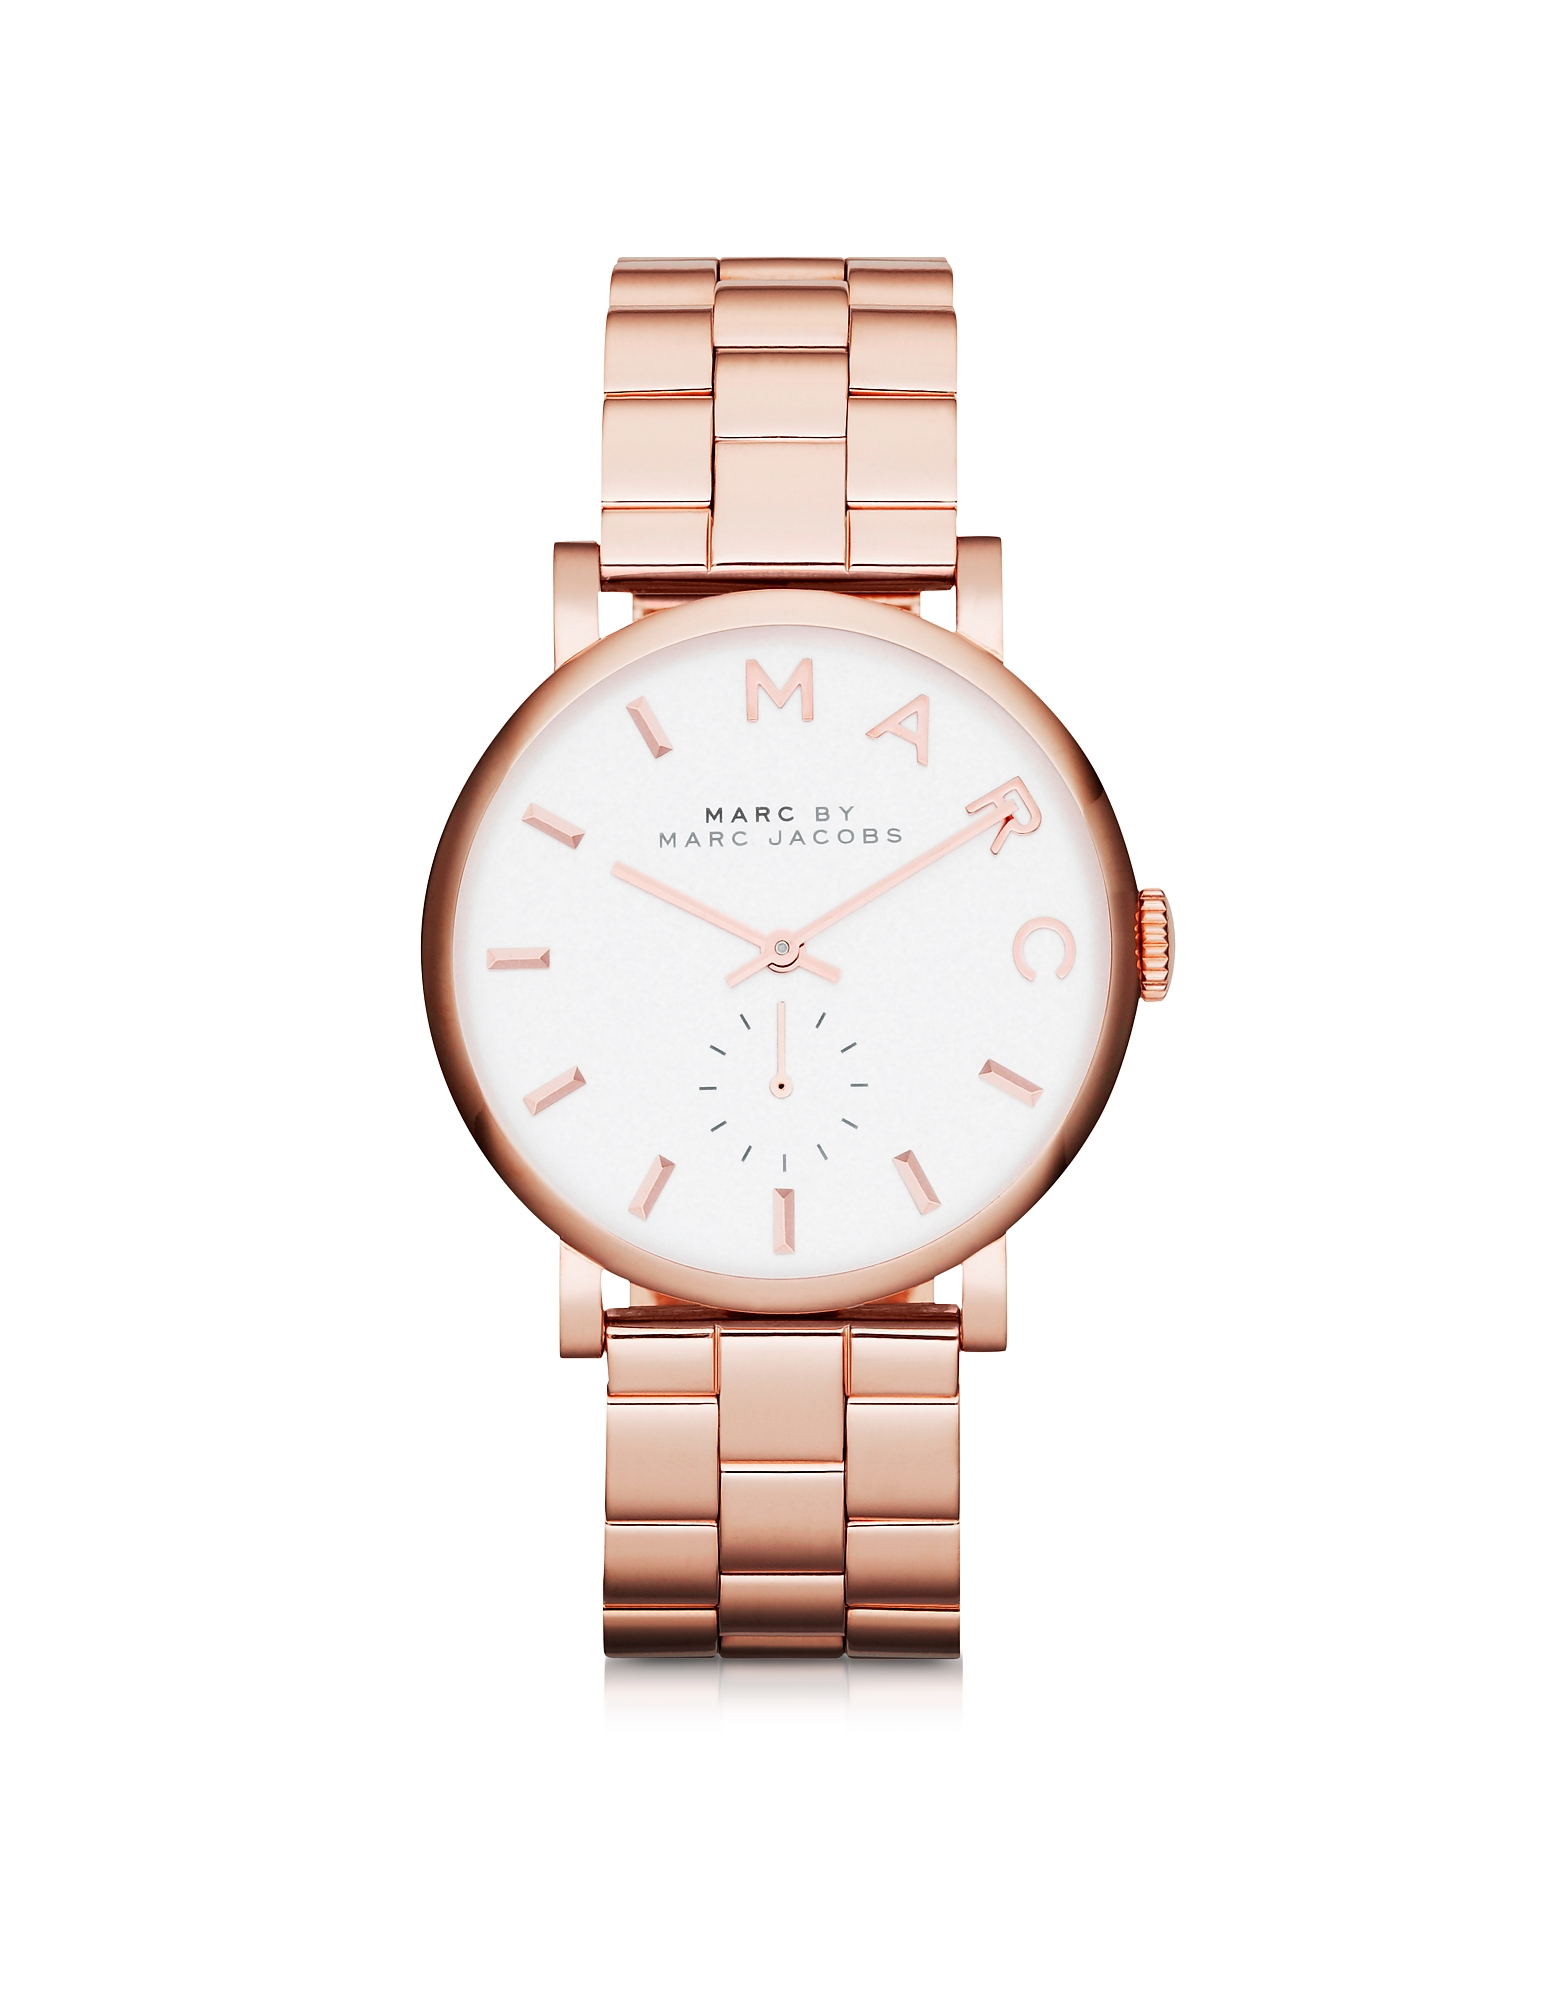 Image of Marc by Marc Jacobs Designer Women's Watches, Baker 33 MM Stainless Steel Women's Watch